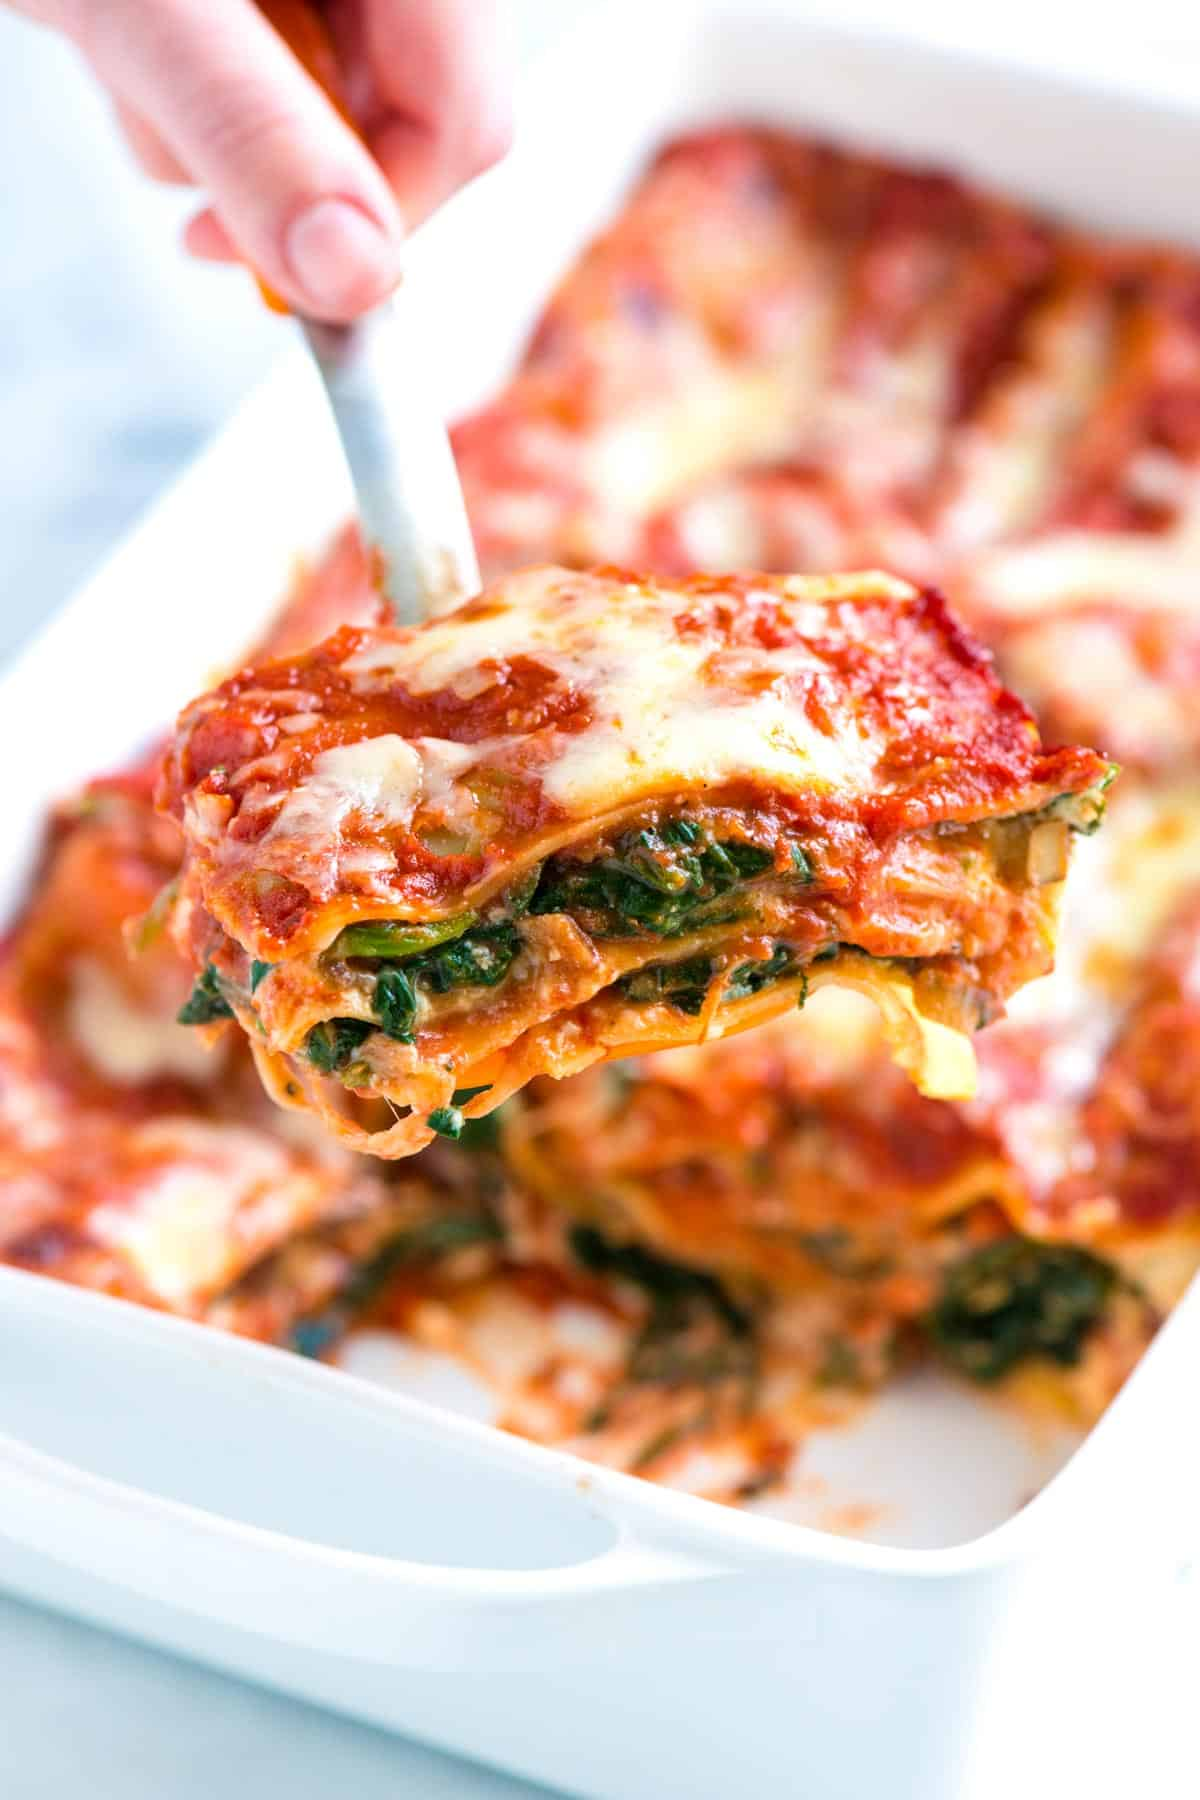 Exceptional Easy Spinach Lasagna Recipe With Fresh Spinach, Flavorful Mushrooms, Light  Tomato Sauce, And